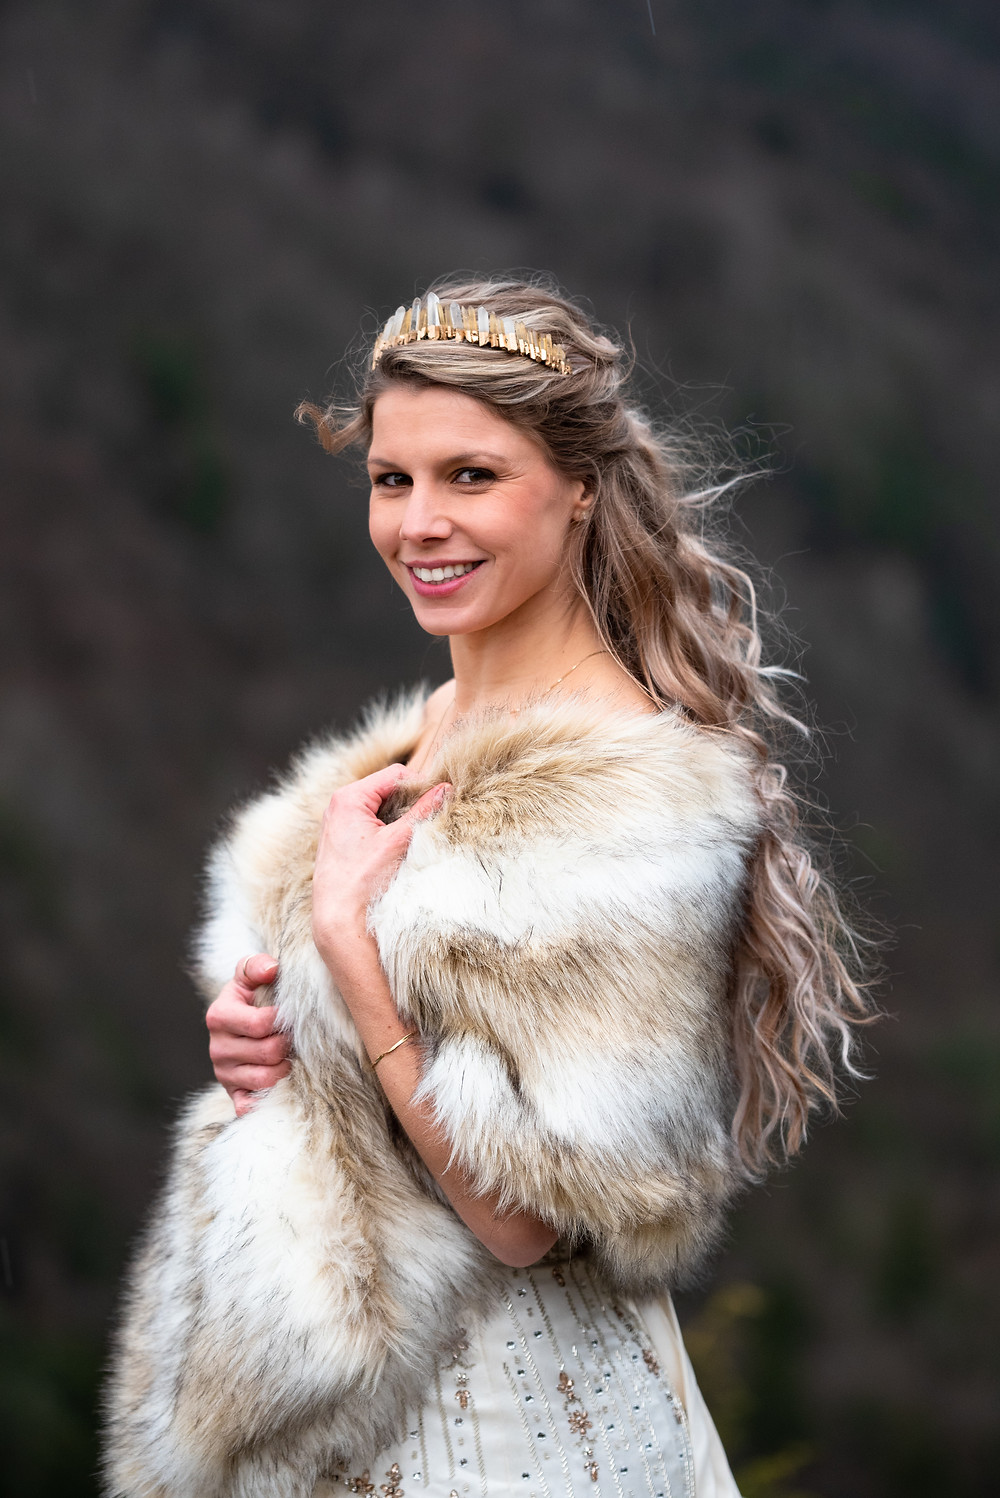 Bridal portrait with crown and fur wrap during this winter wedding in the mountians